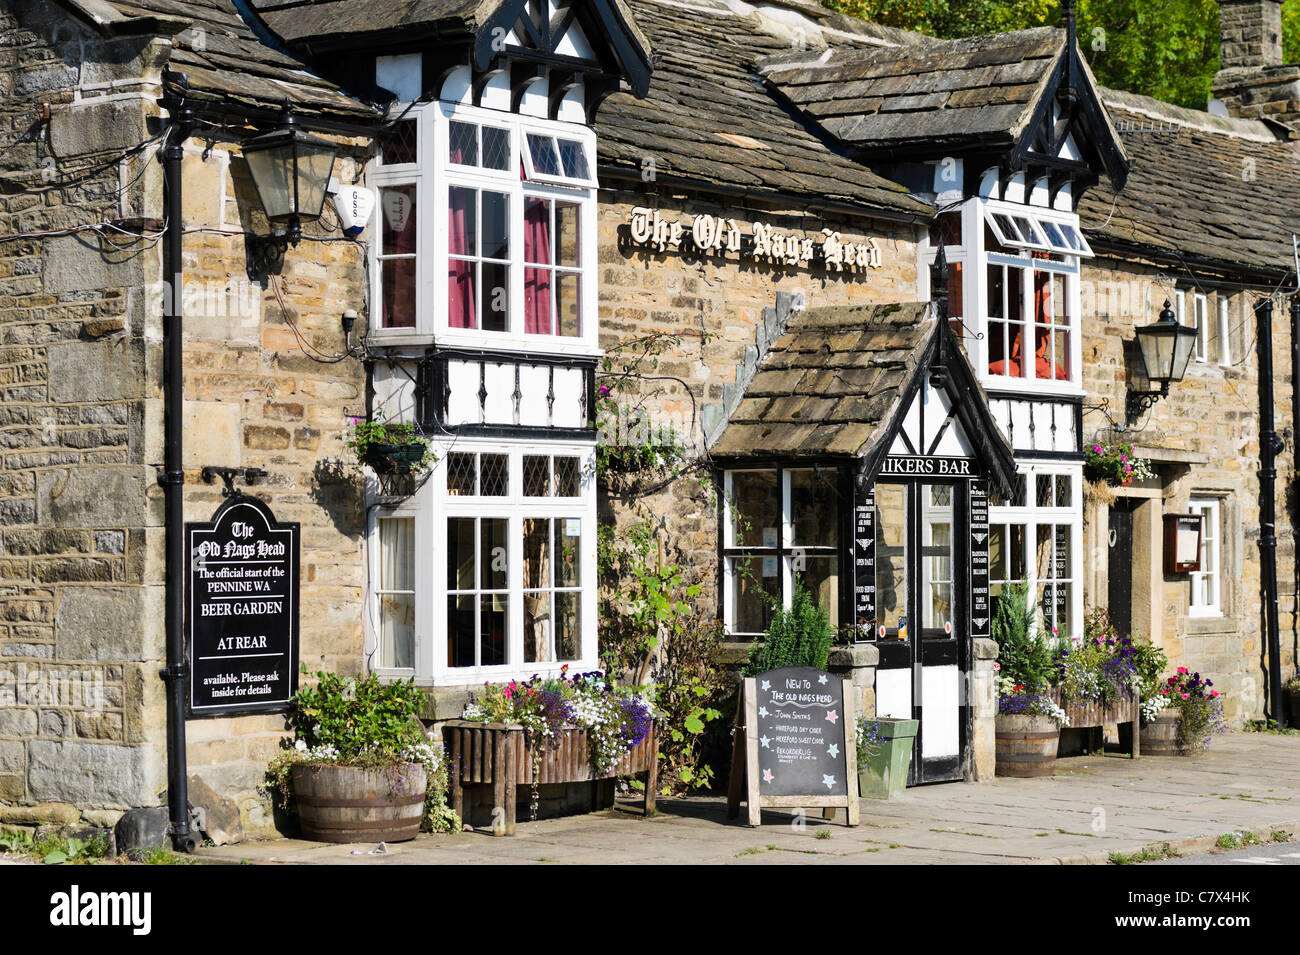 The Old Nags Head Pub In Edale At The Start Of The Pennine Way